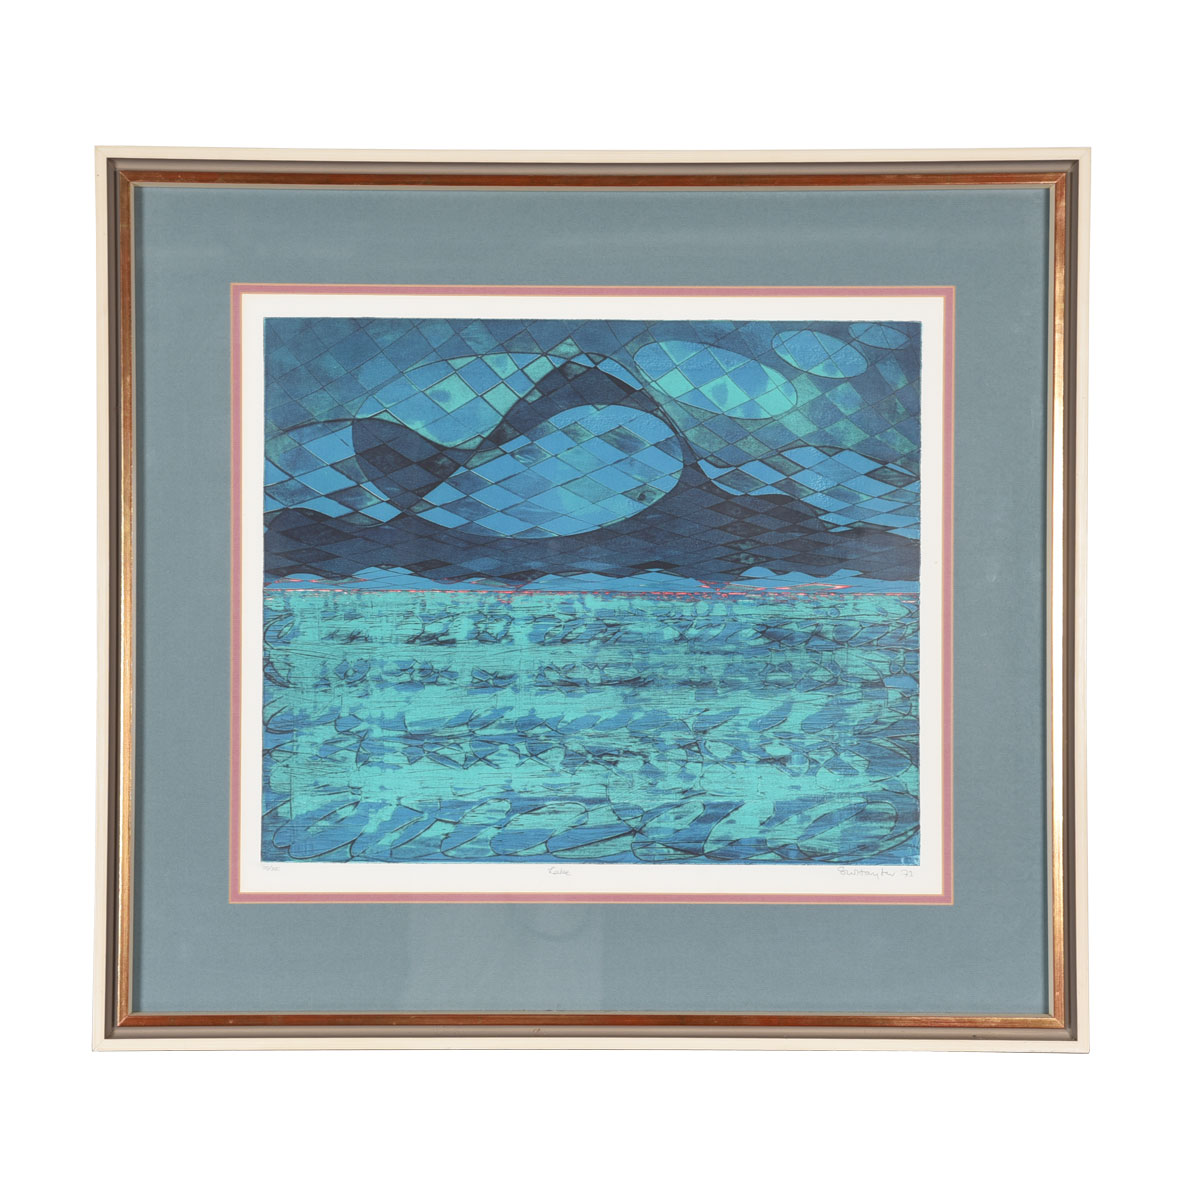 """Soft-Ground Etching in Color by Stanley William Hater 1973 """"LAKE"""" ed. III / XX"""